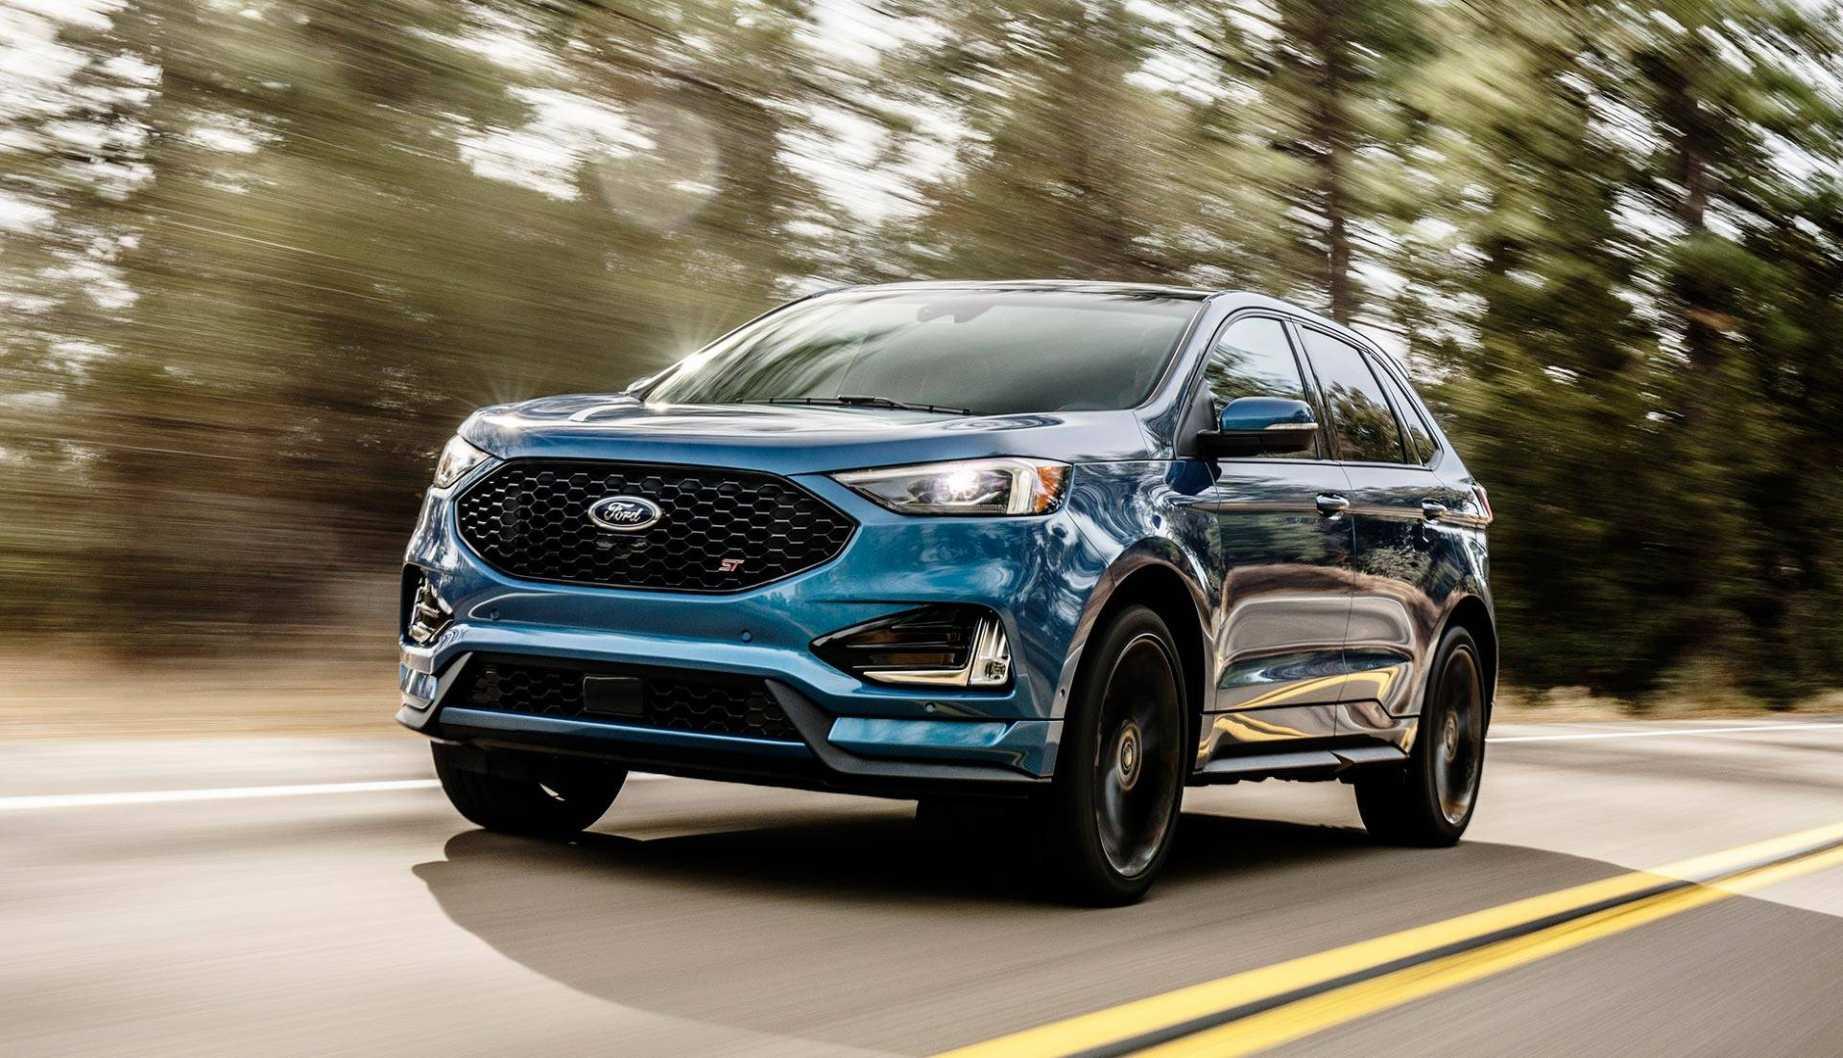 66 All New 2020 Ford Edge Specs And Review